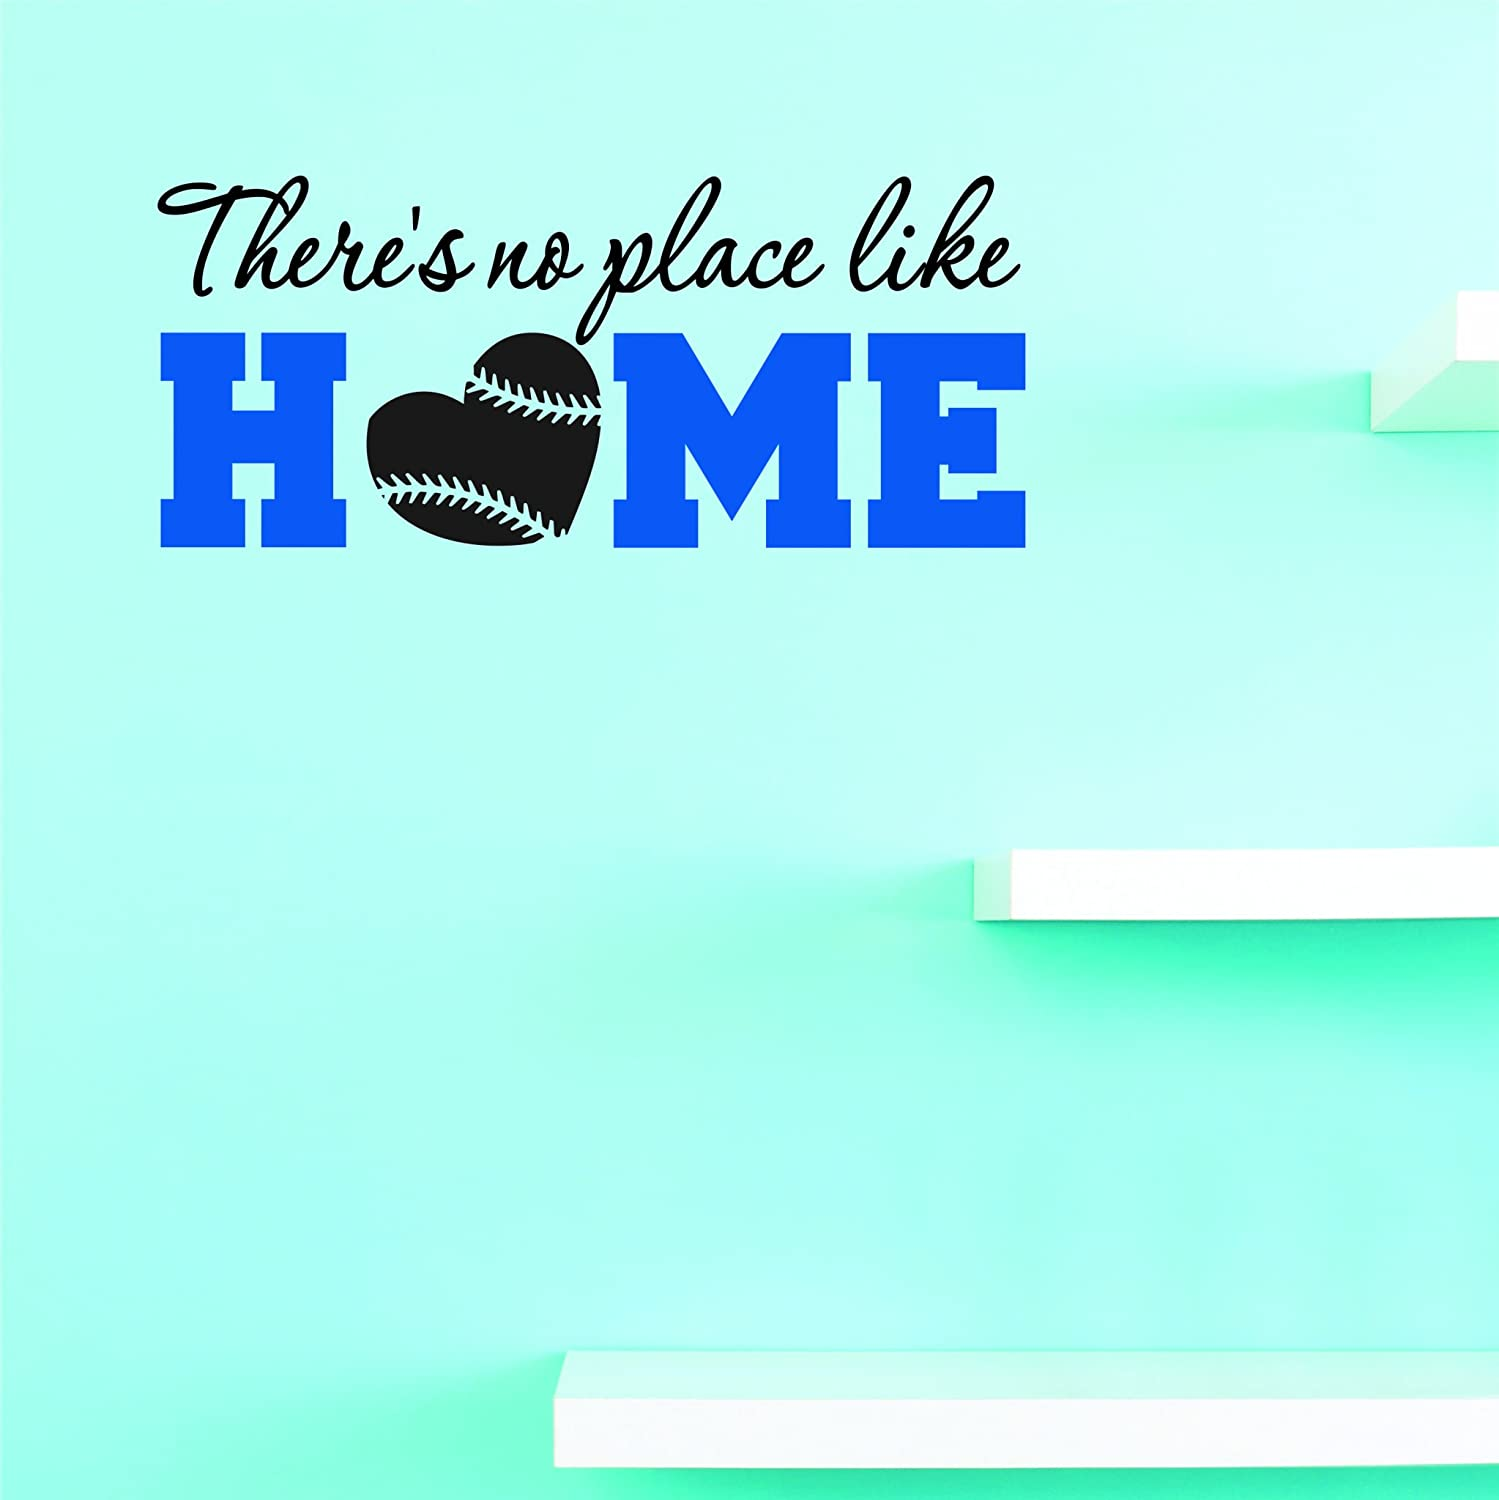 Wall Art Size Multi 10 Inches x 20 Inches Color 10 x 20 Design with Vinyl JER 2314 1 Hot New Decals Theres no Place Like Home